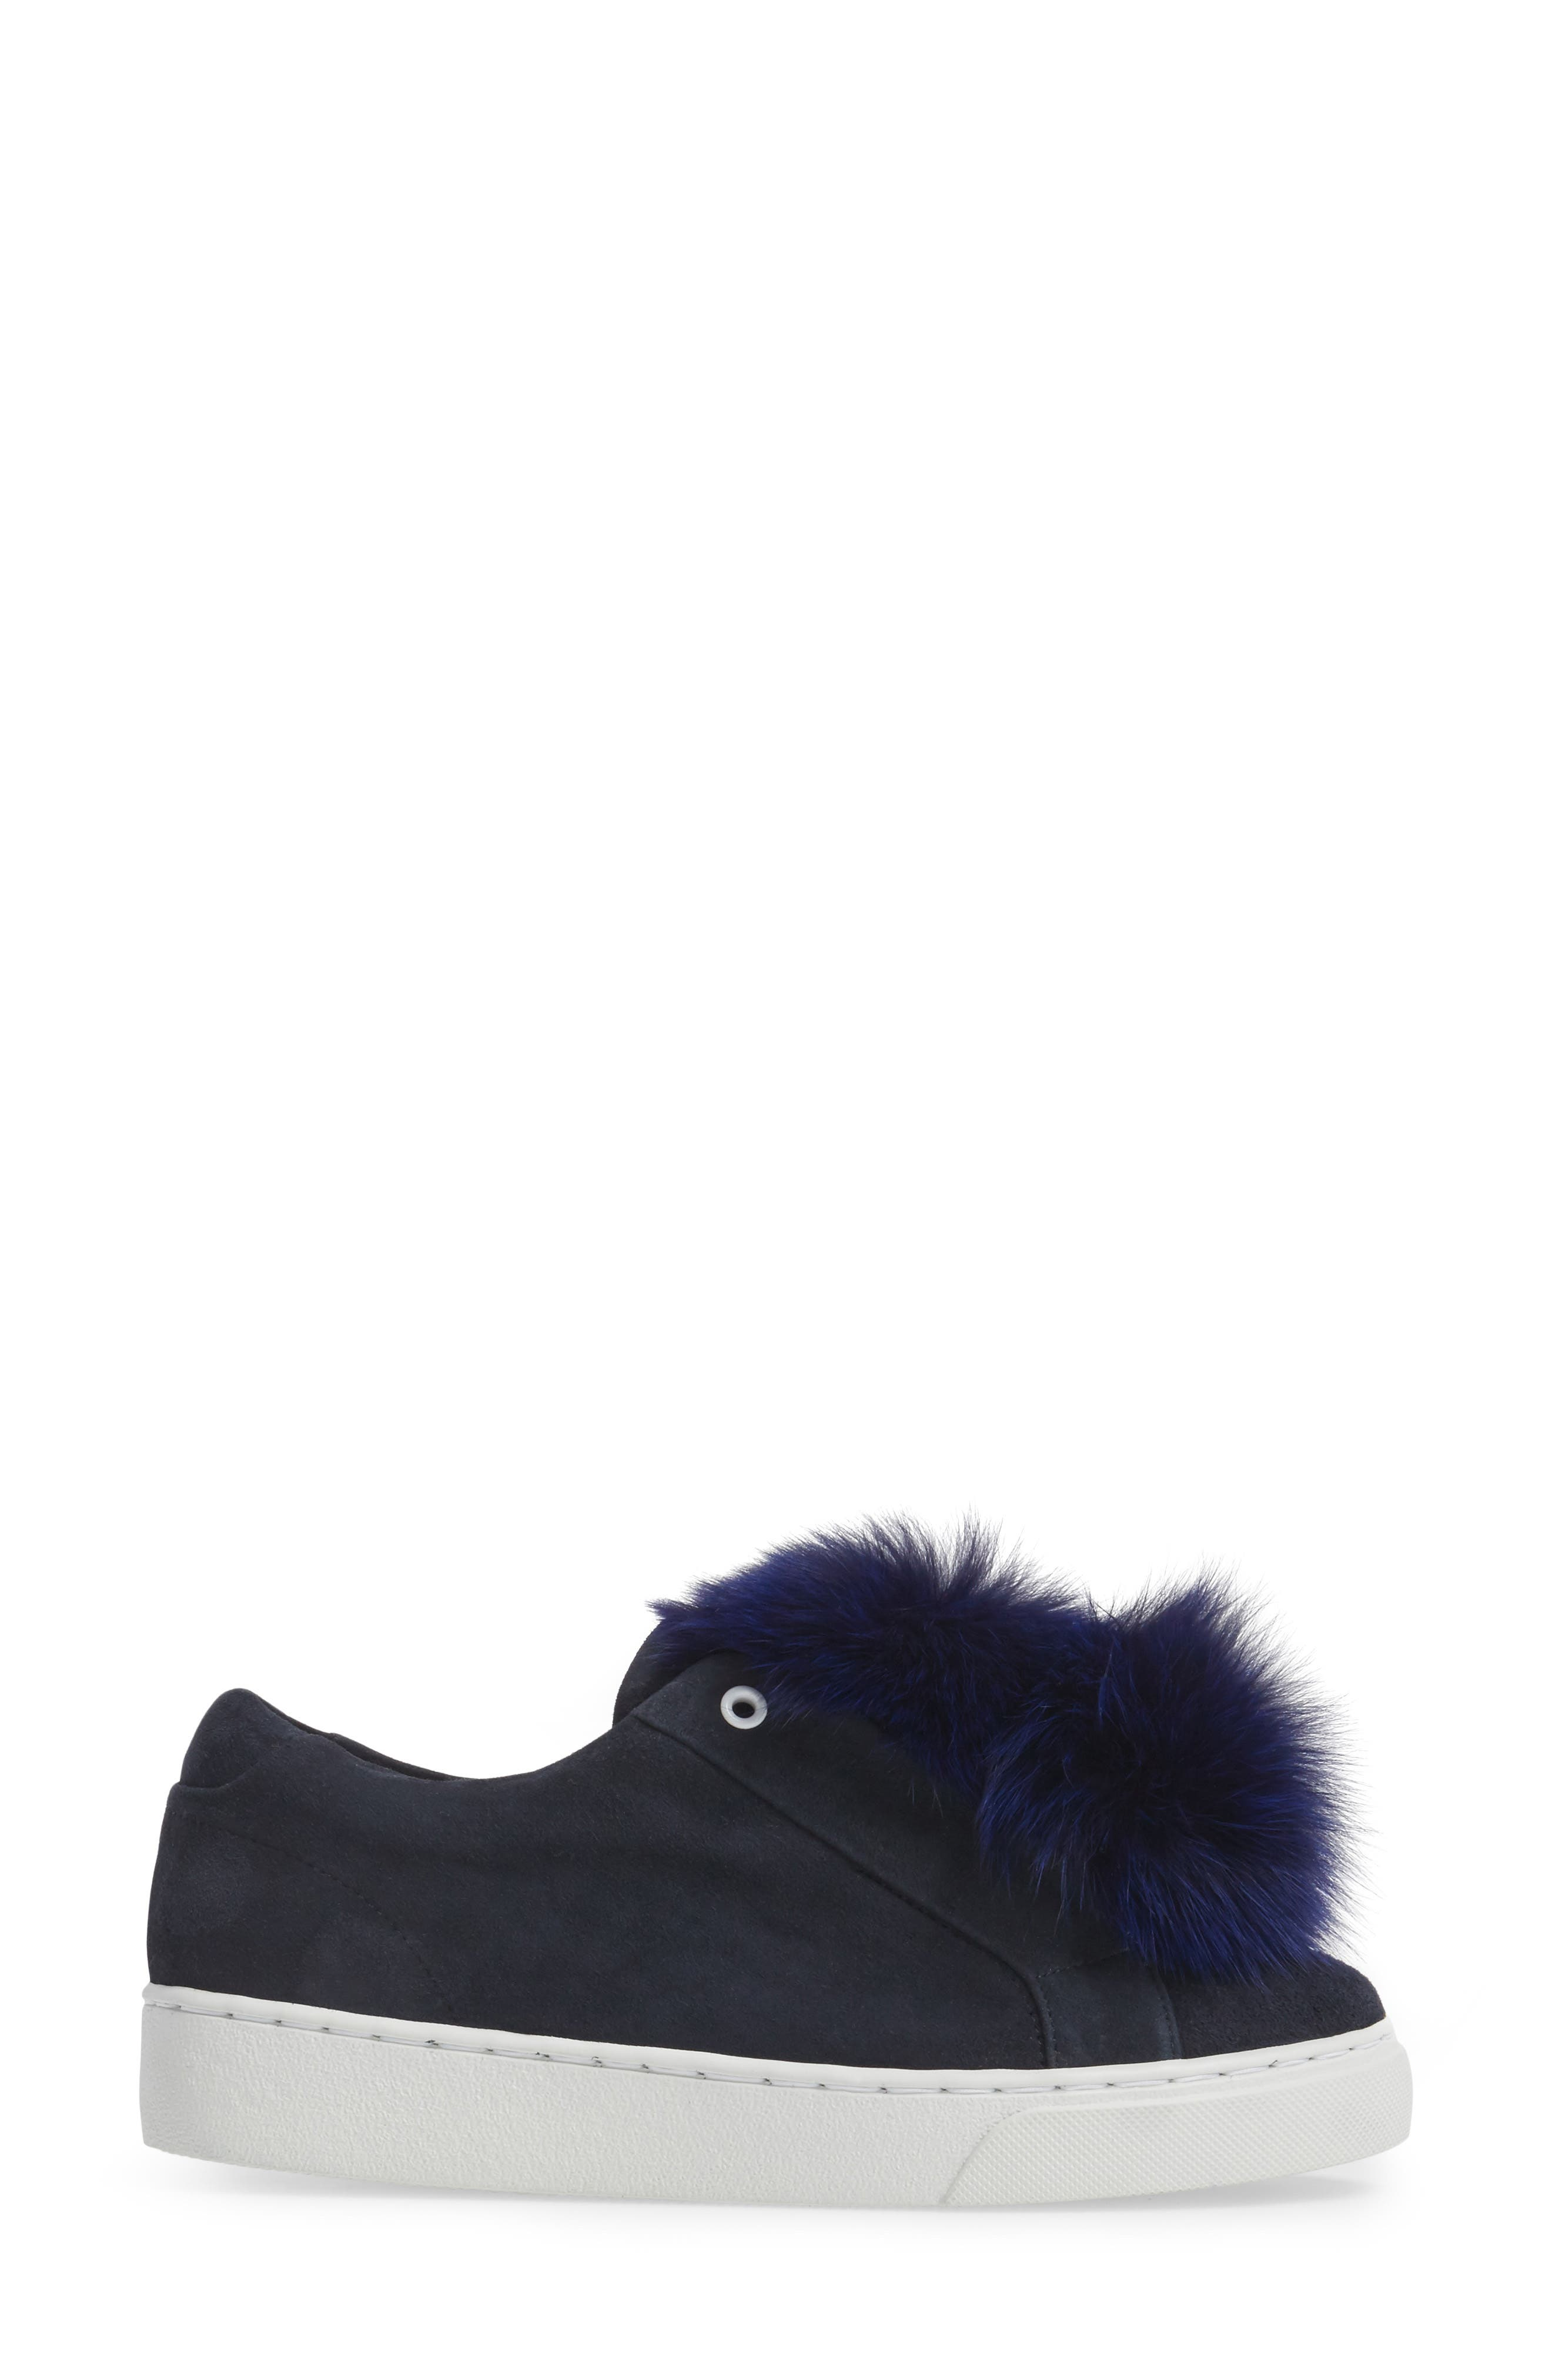 T Genuine Fox Fur Slip-On Sneaker,                             Alternate thumbnail 3, color,                             410